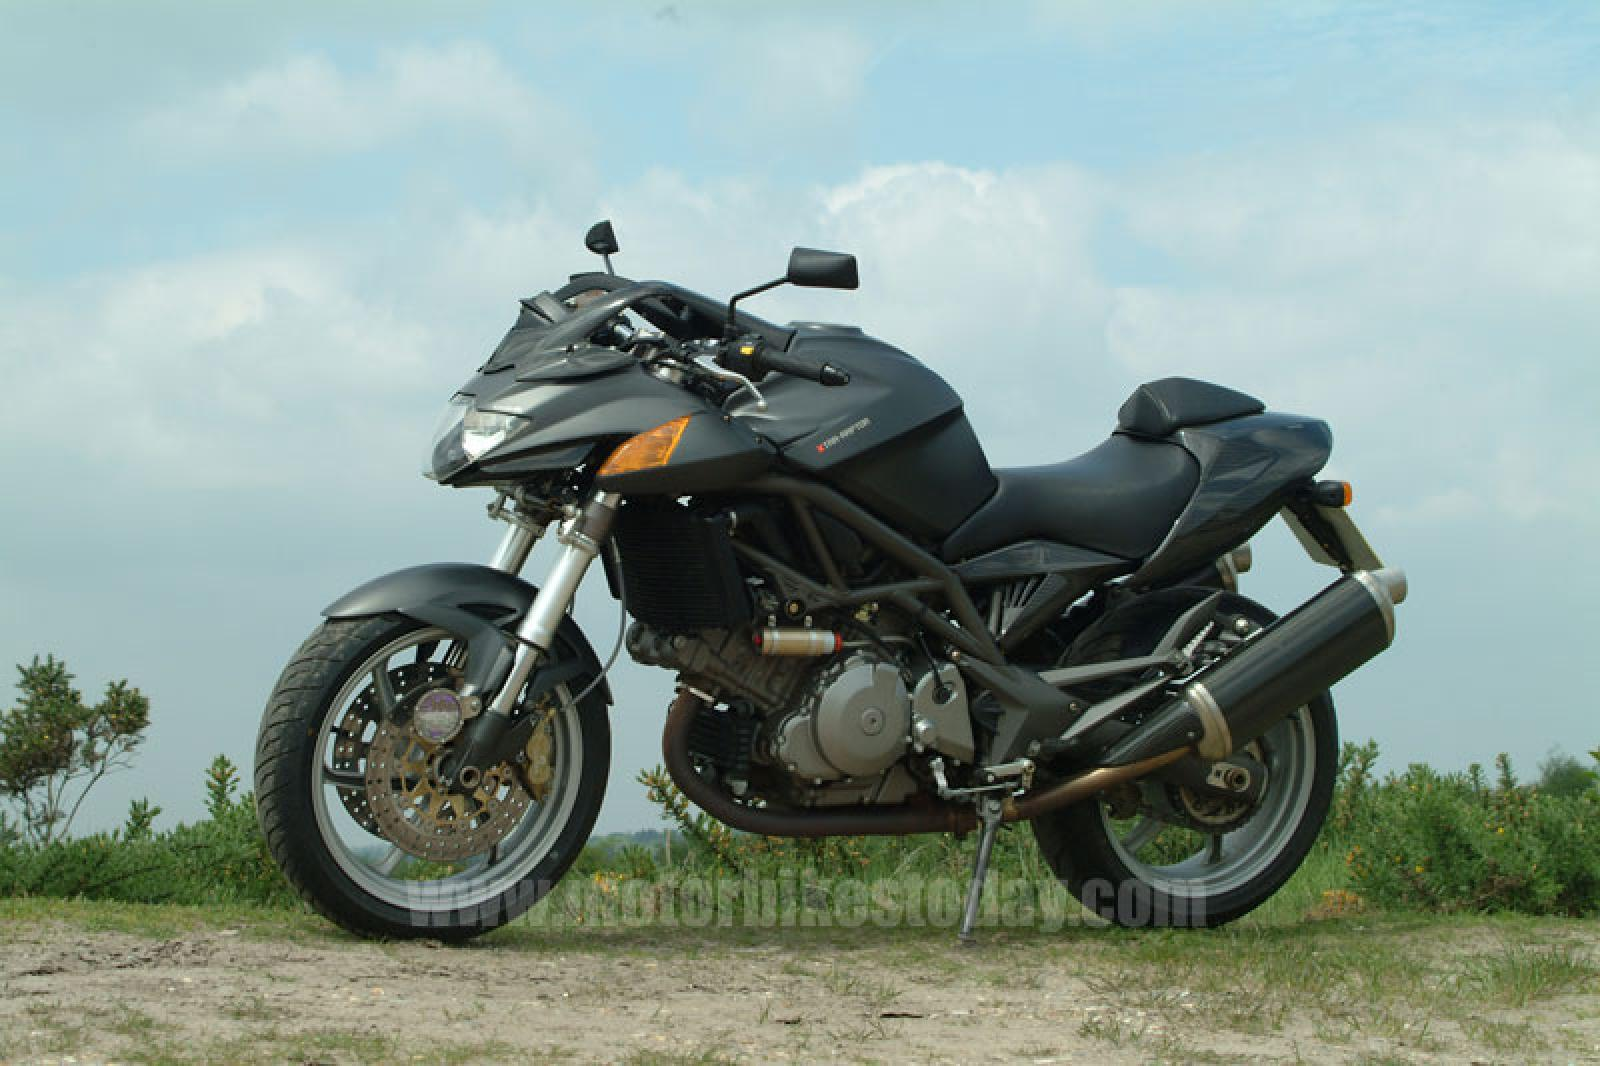 Cagiva Xtra Raptor 1000 images #68013